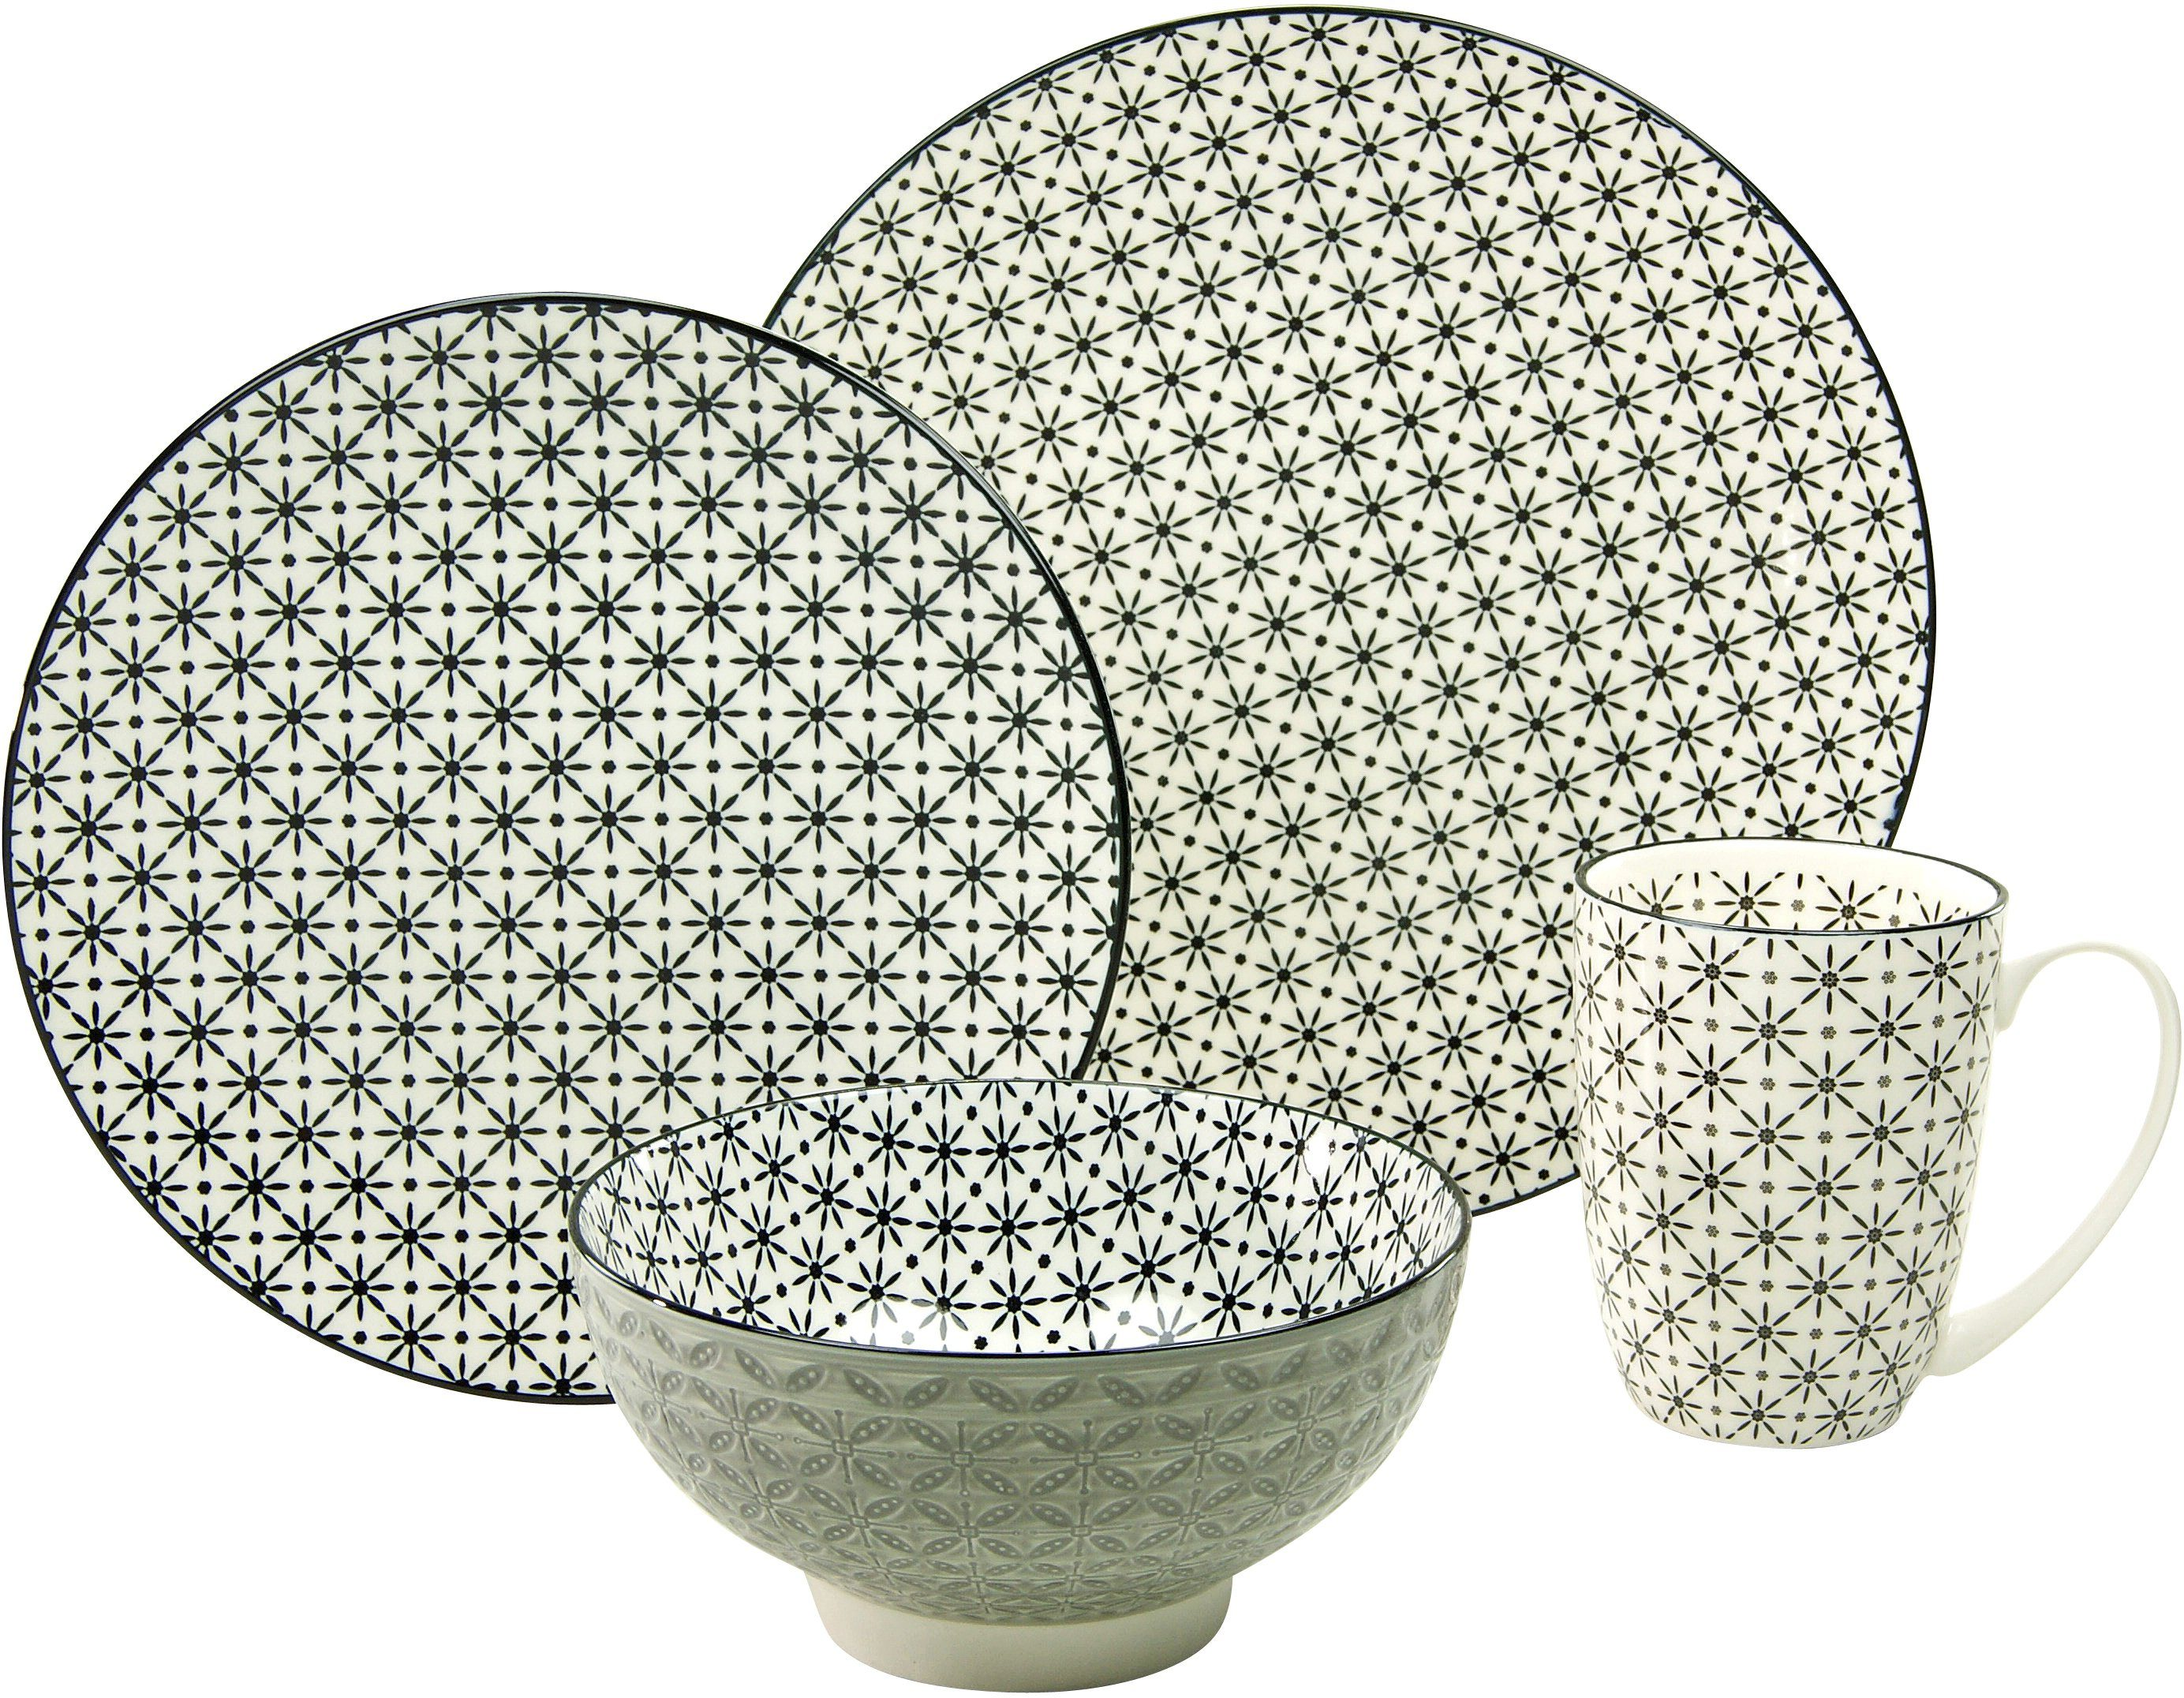 CreaTable Single Geschirr-Set, Steinzeug, 4-teilig, Dekor Star, »New Style black«